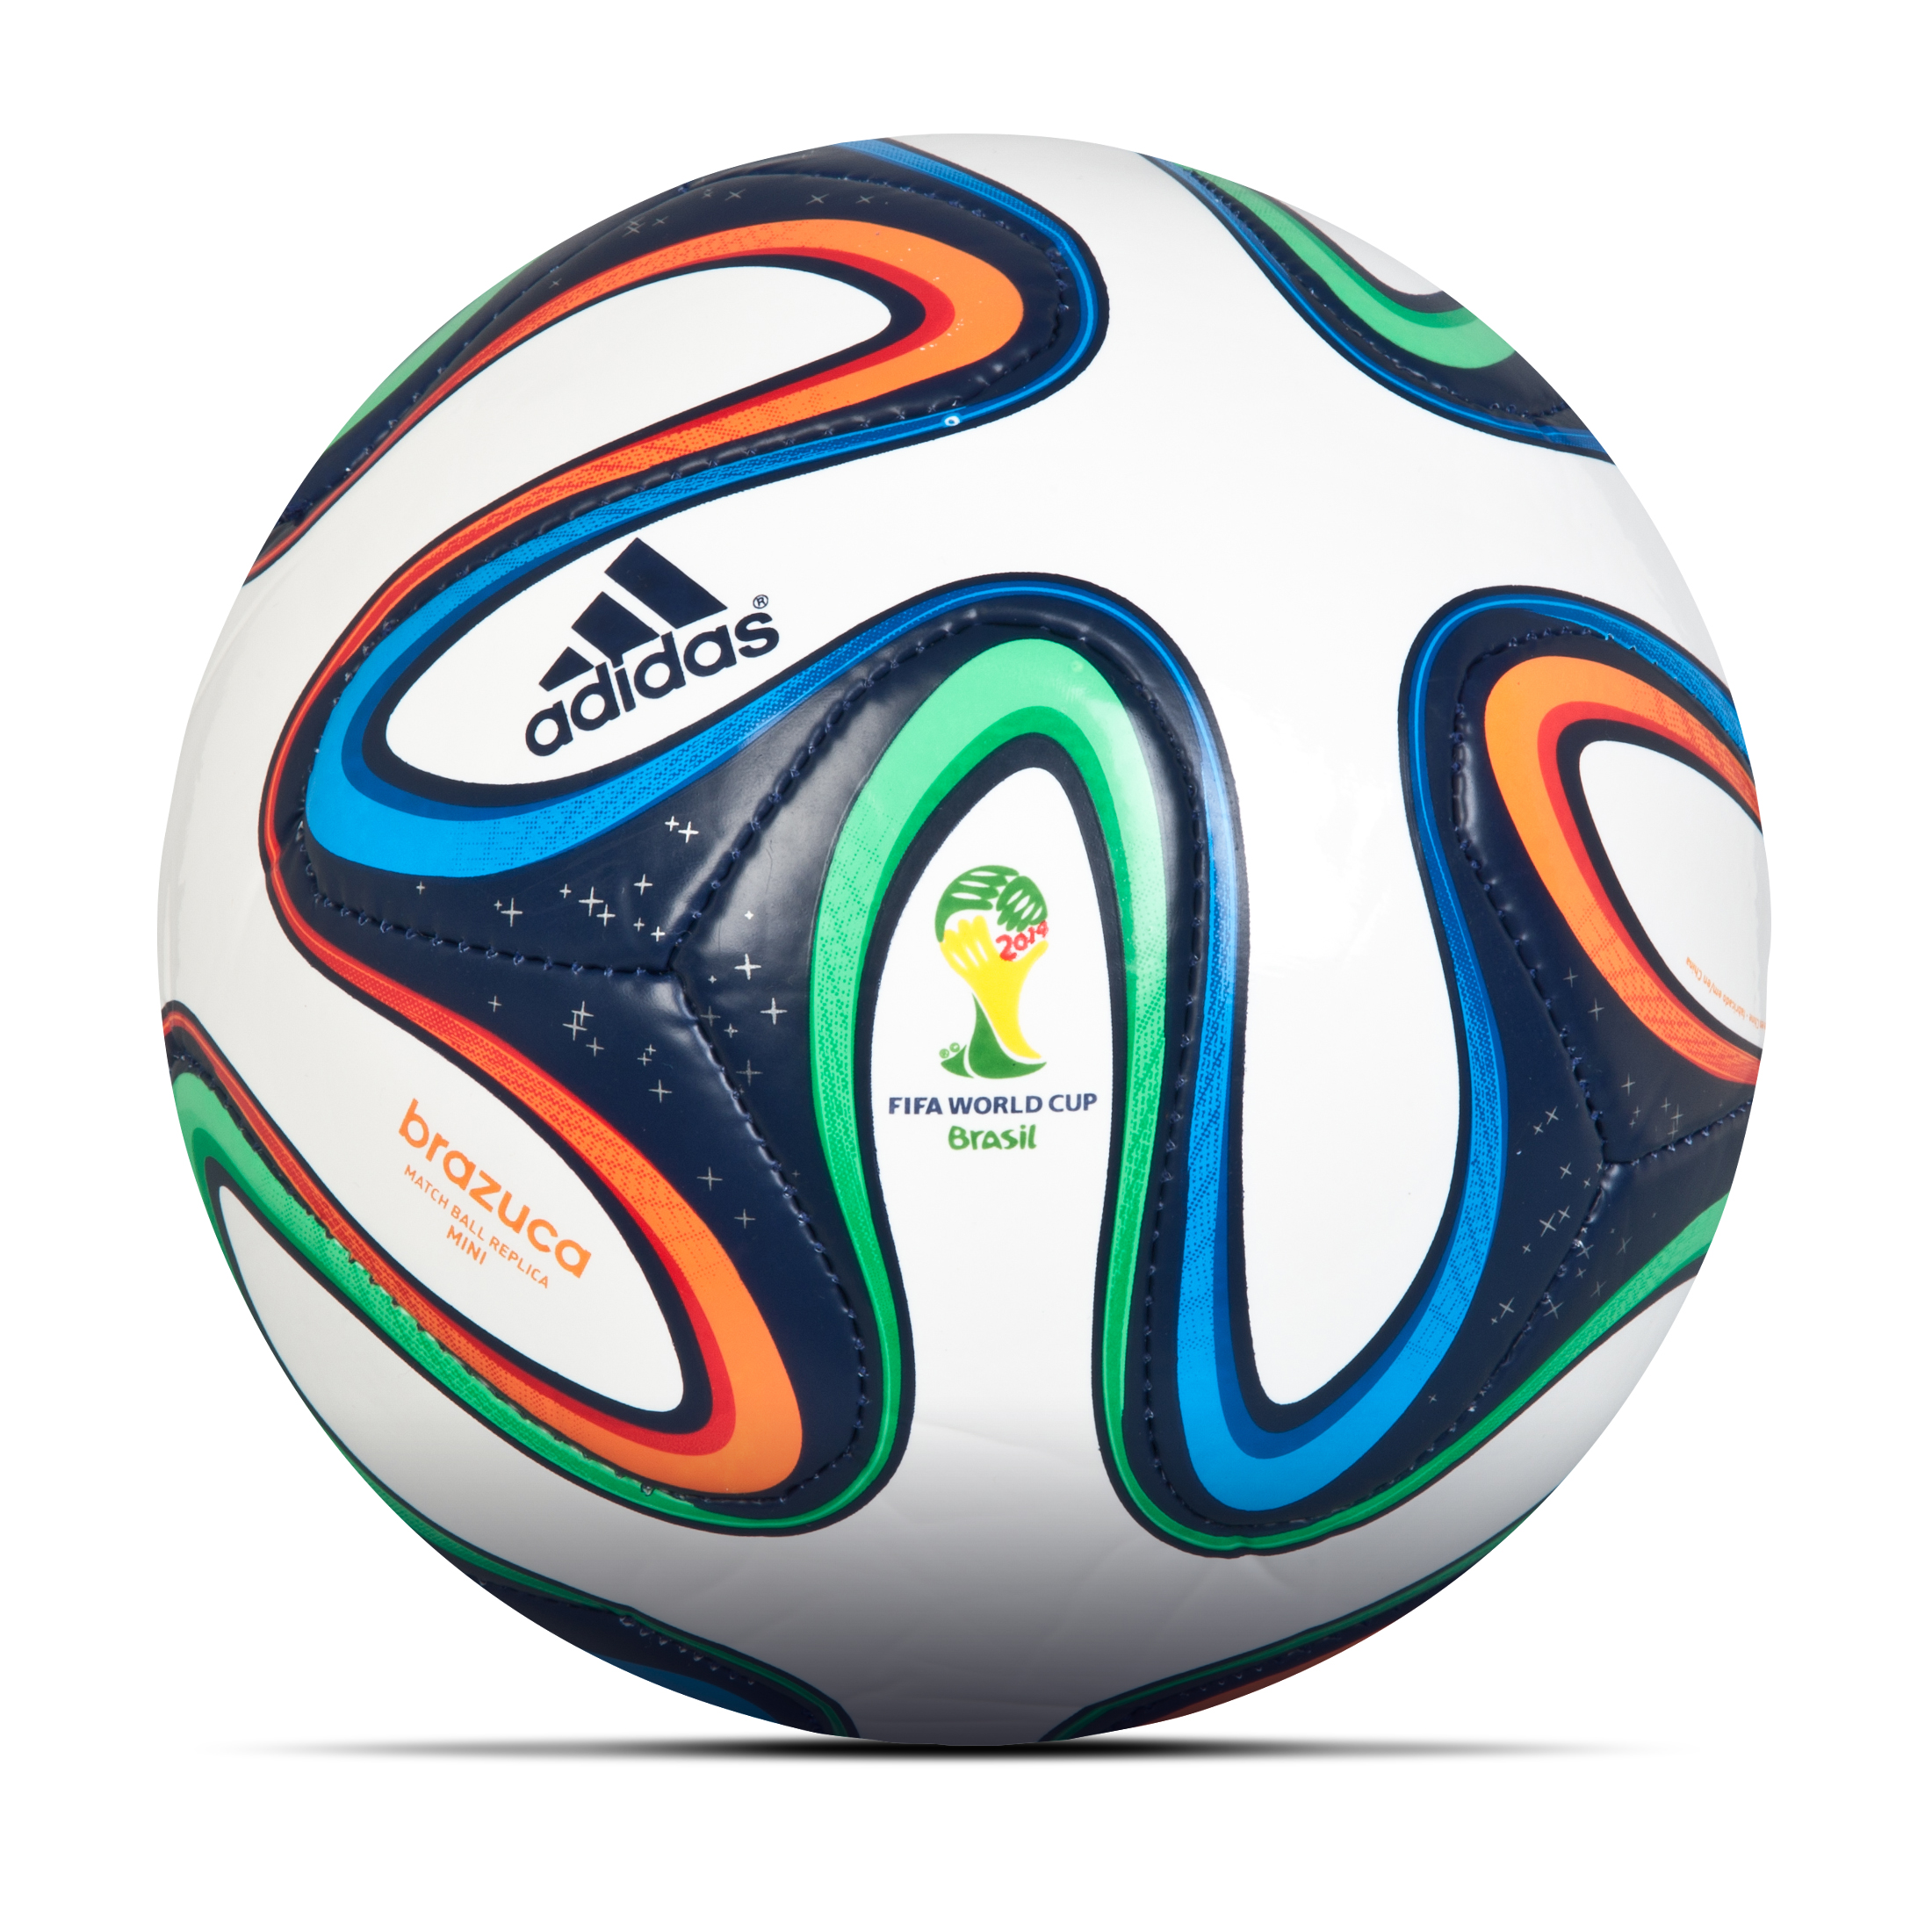 Adidas Brazuca Mini Football - Size 1